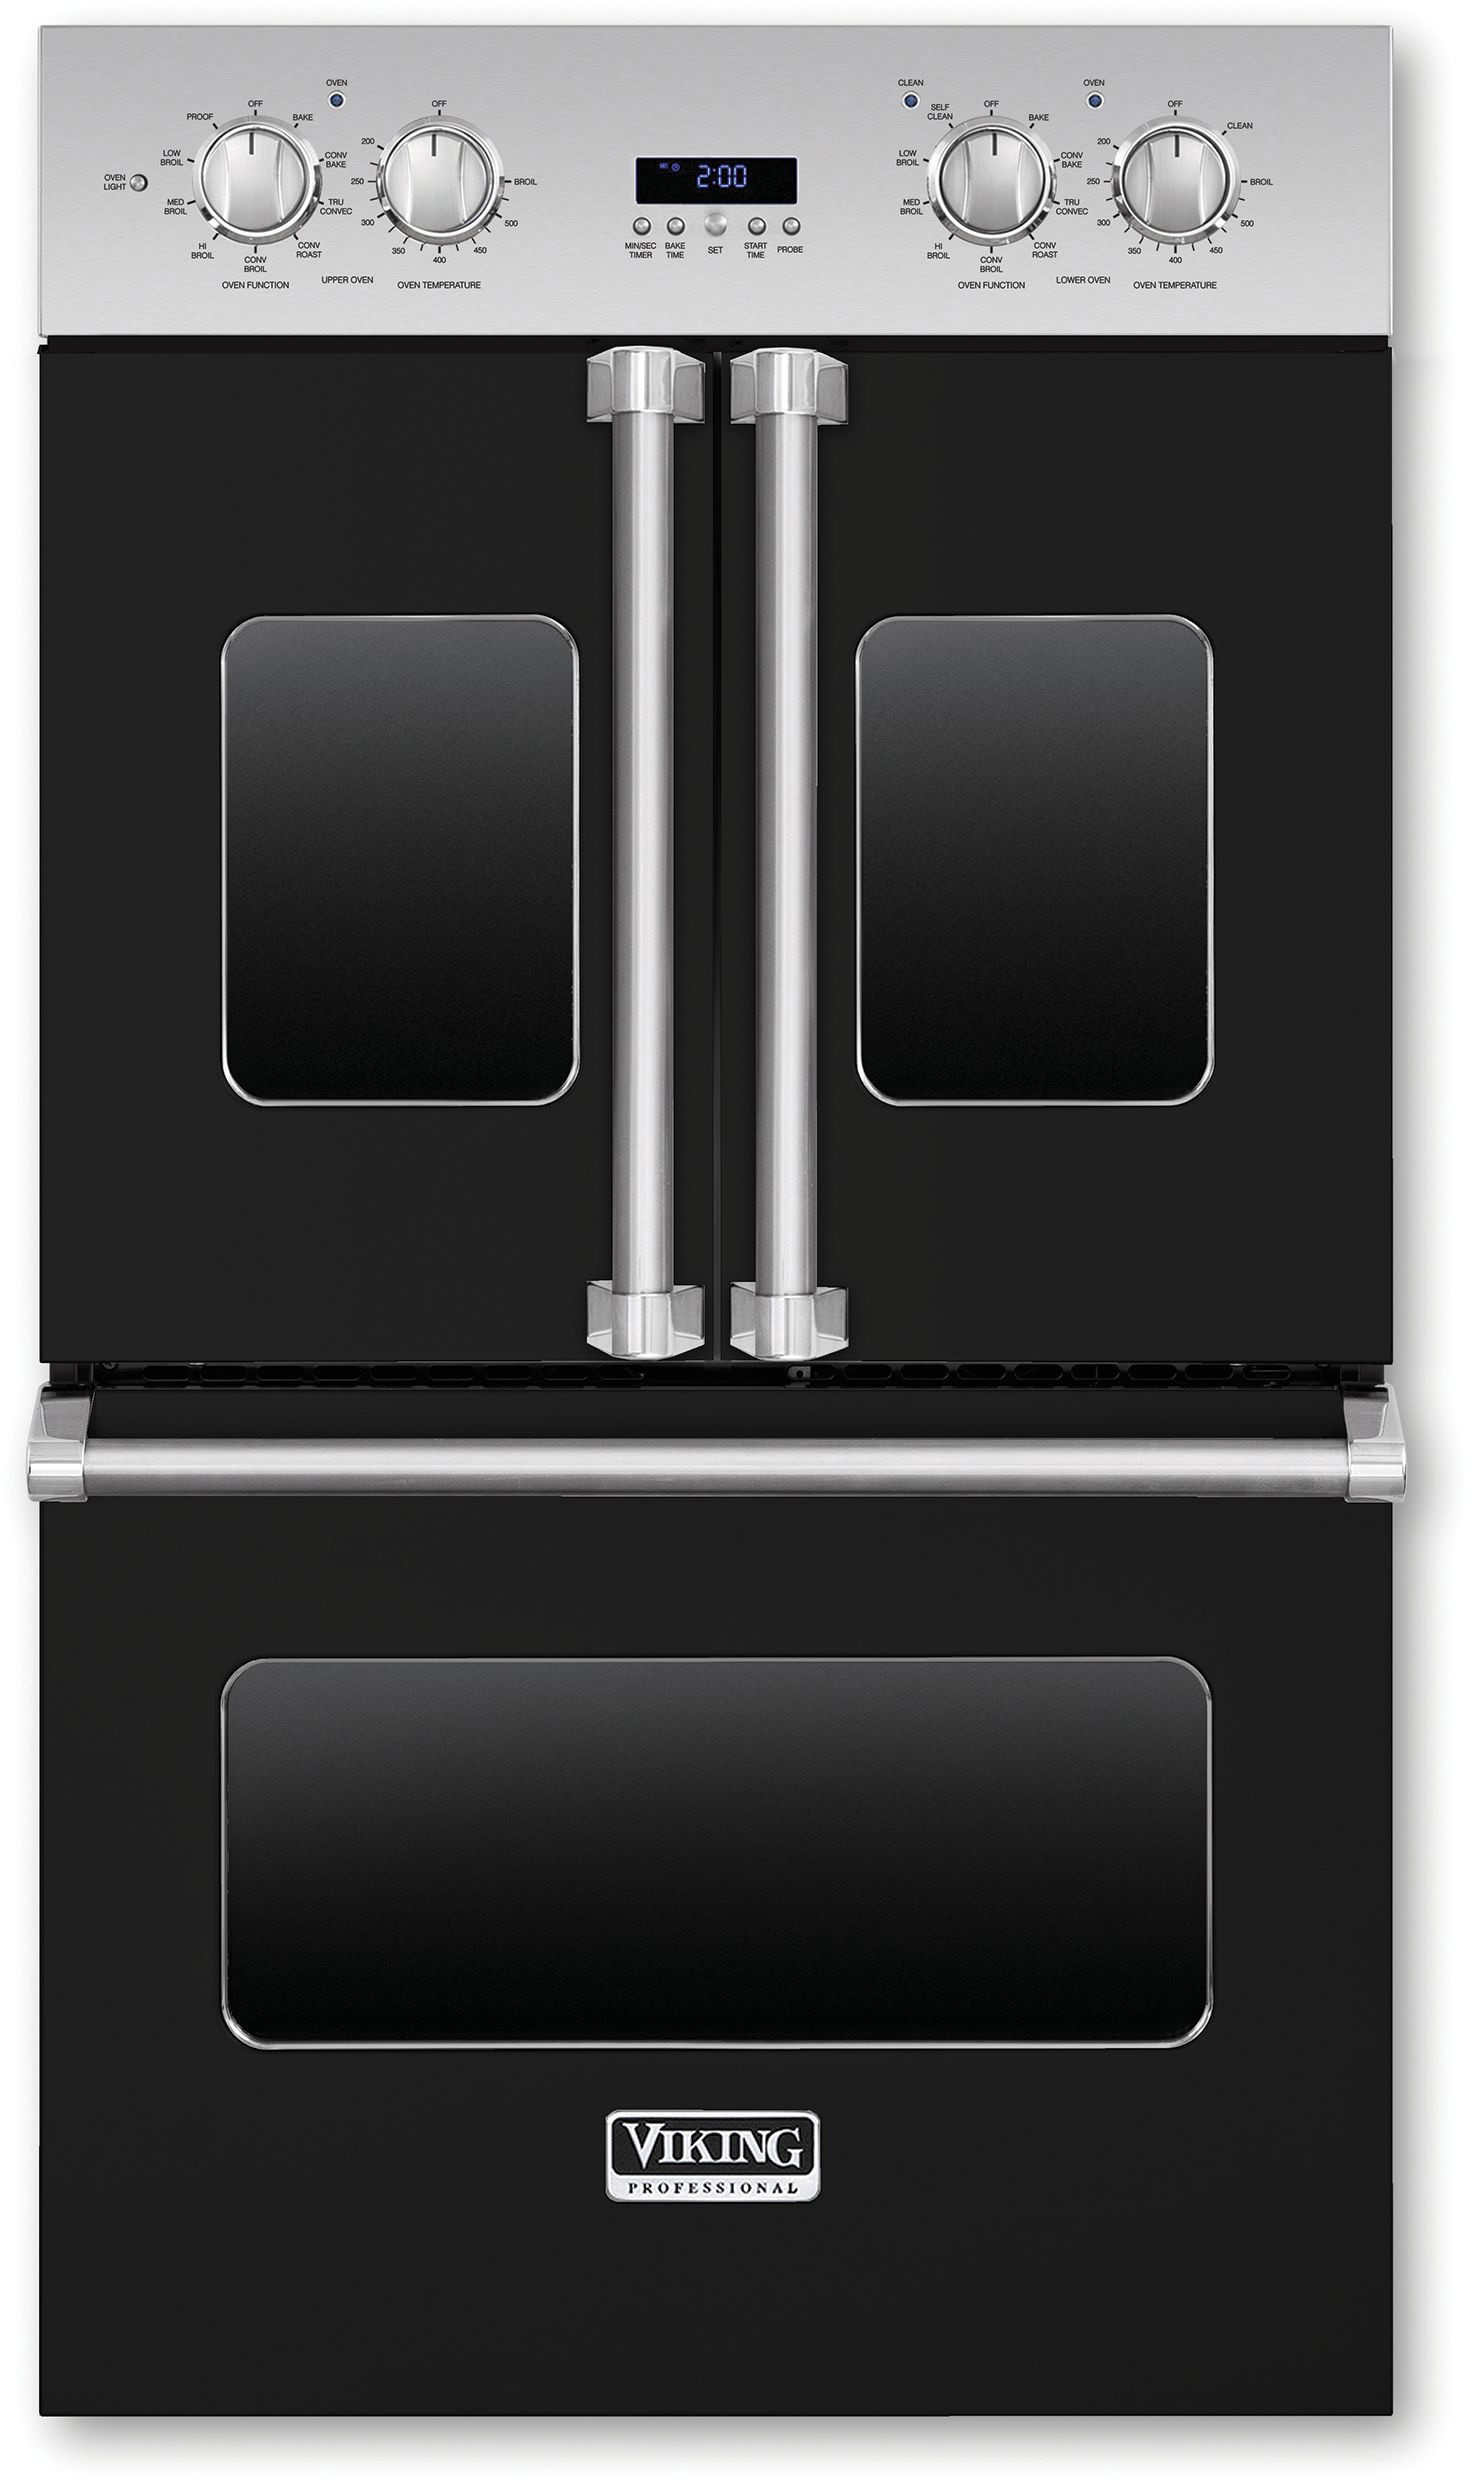 30 Wall Ovens Viking Professional Premiere Series 30 Inch Double Electric French Door Oven